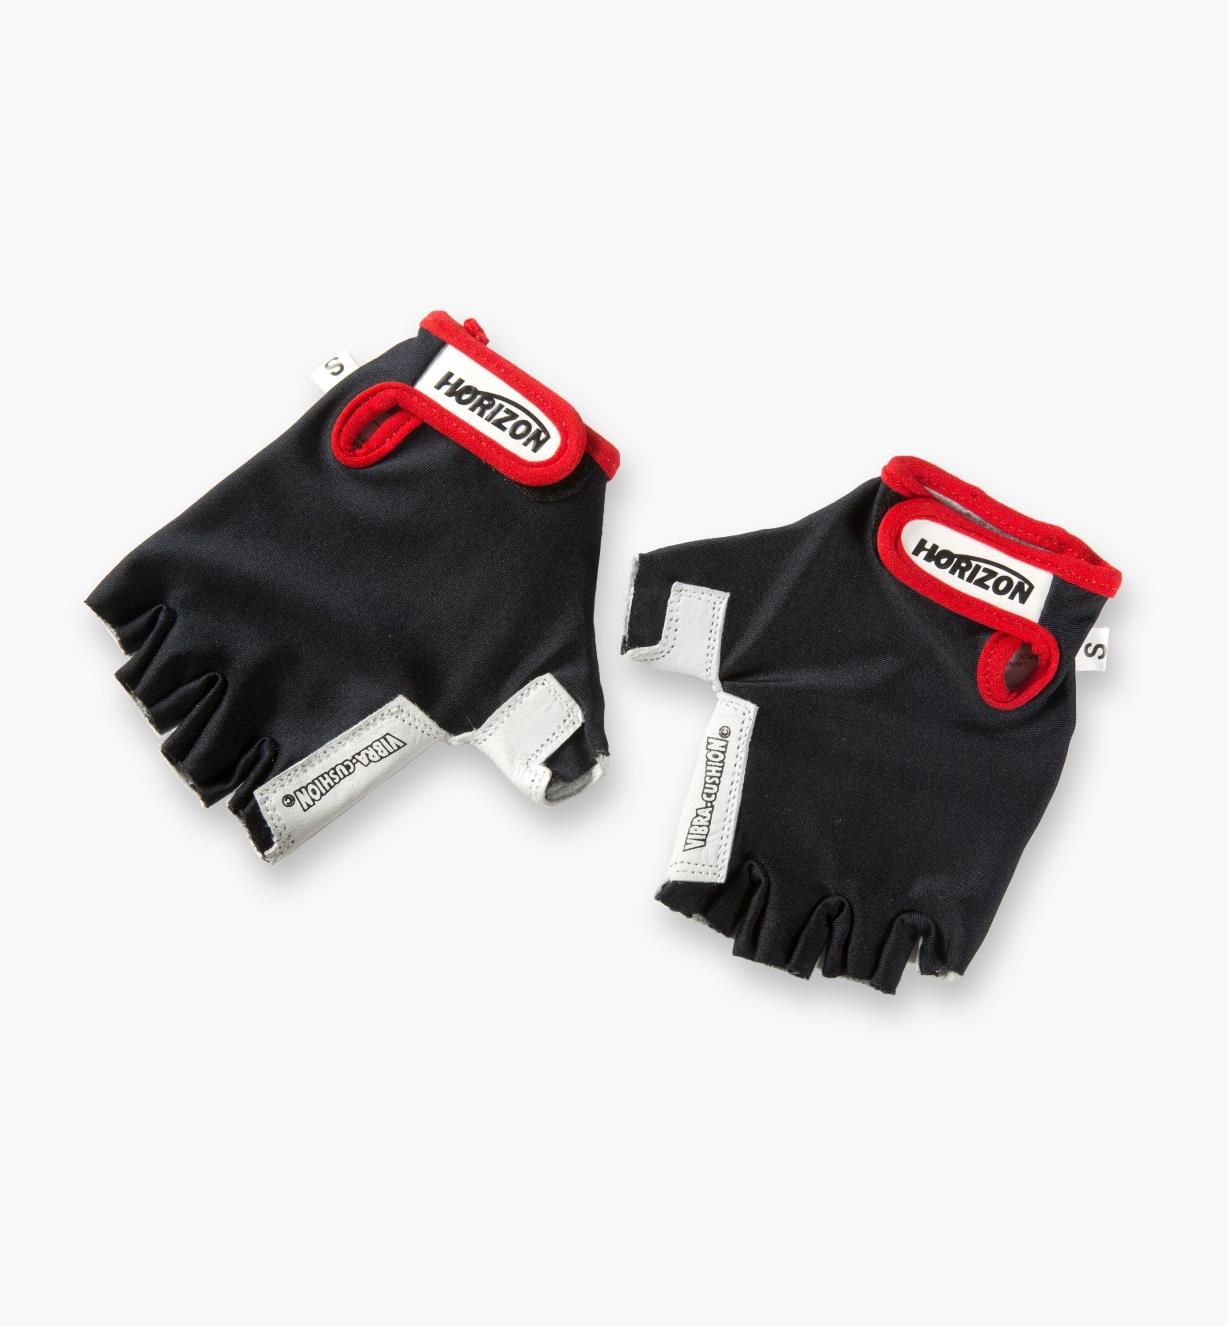 67K8623 - Pr. Anti-Vibration Gloves, Small